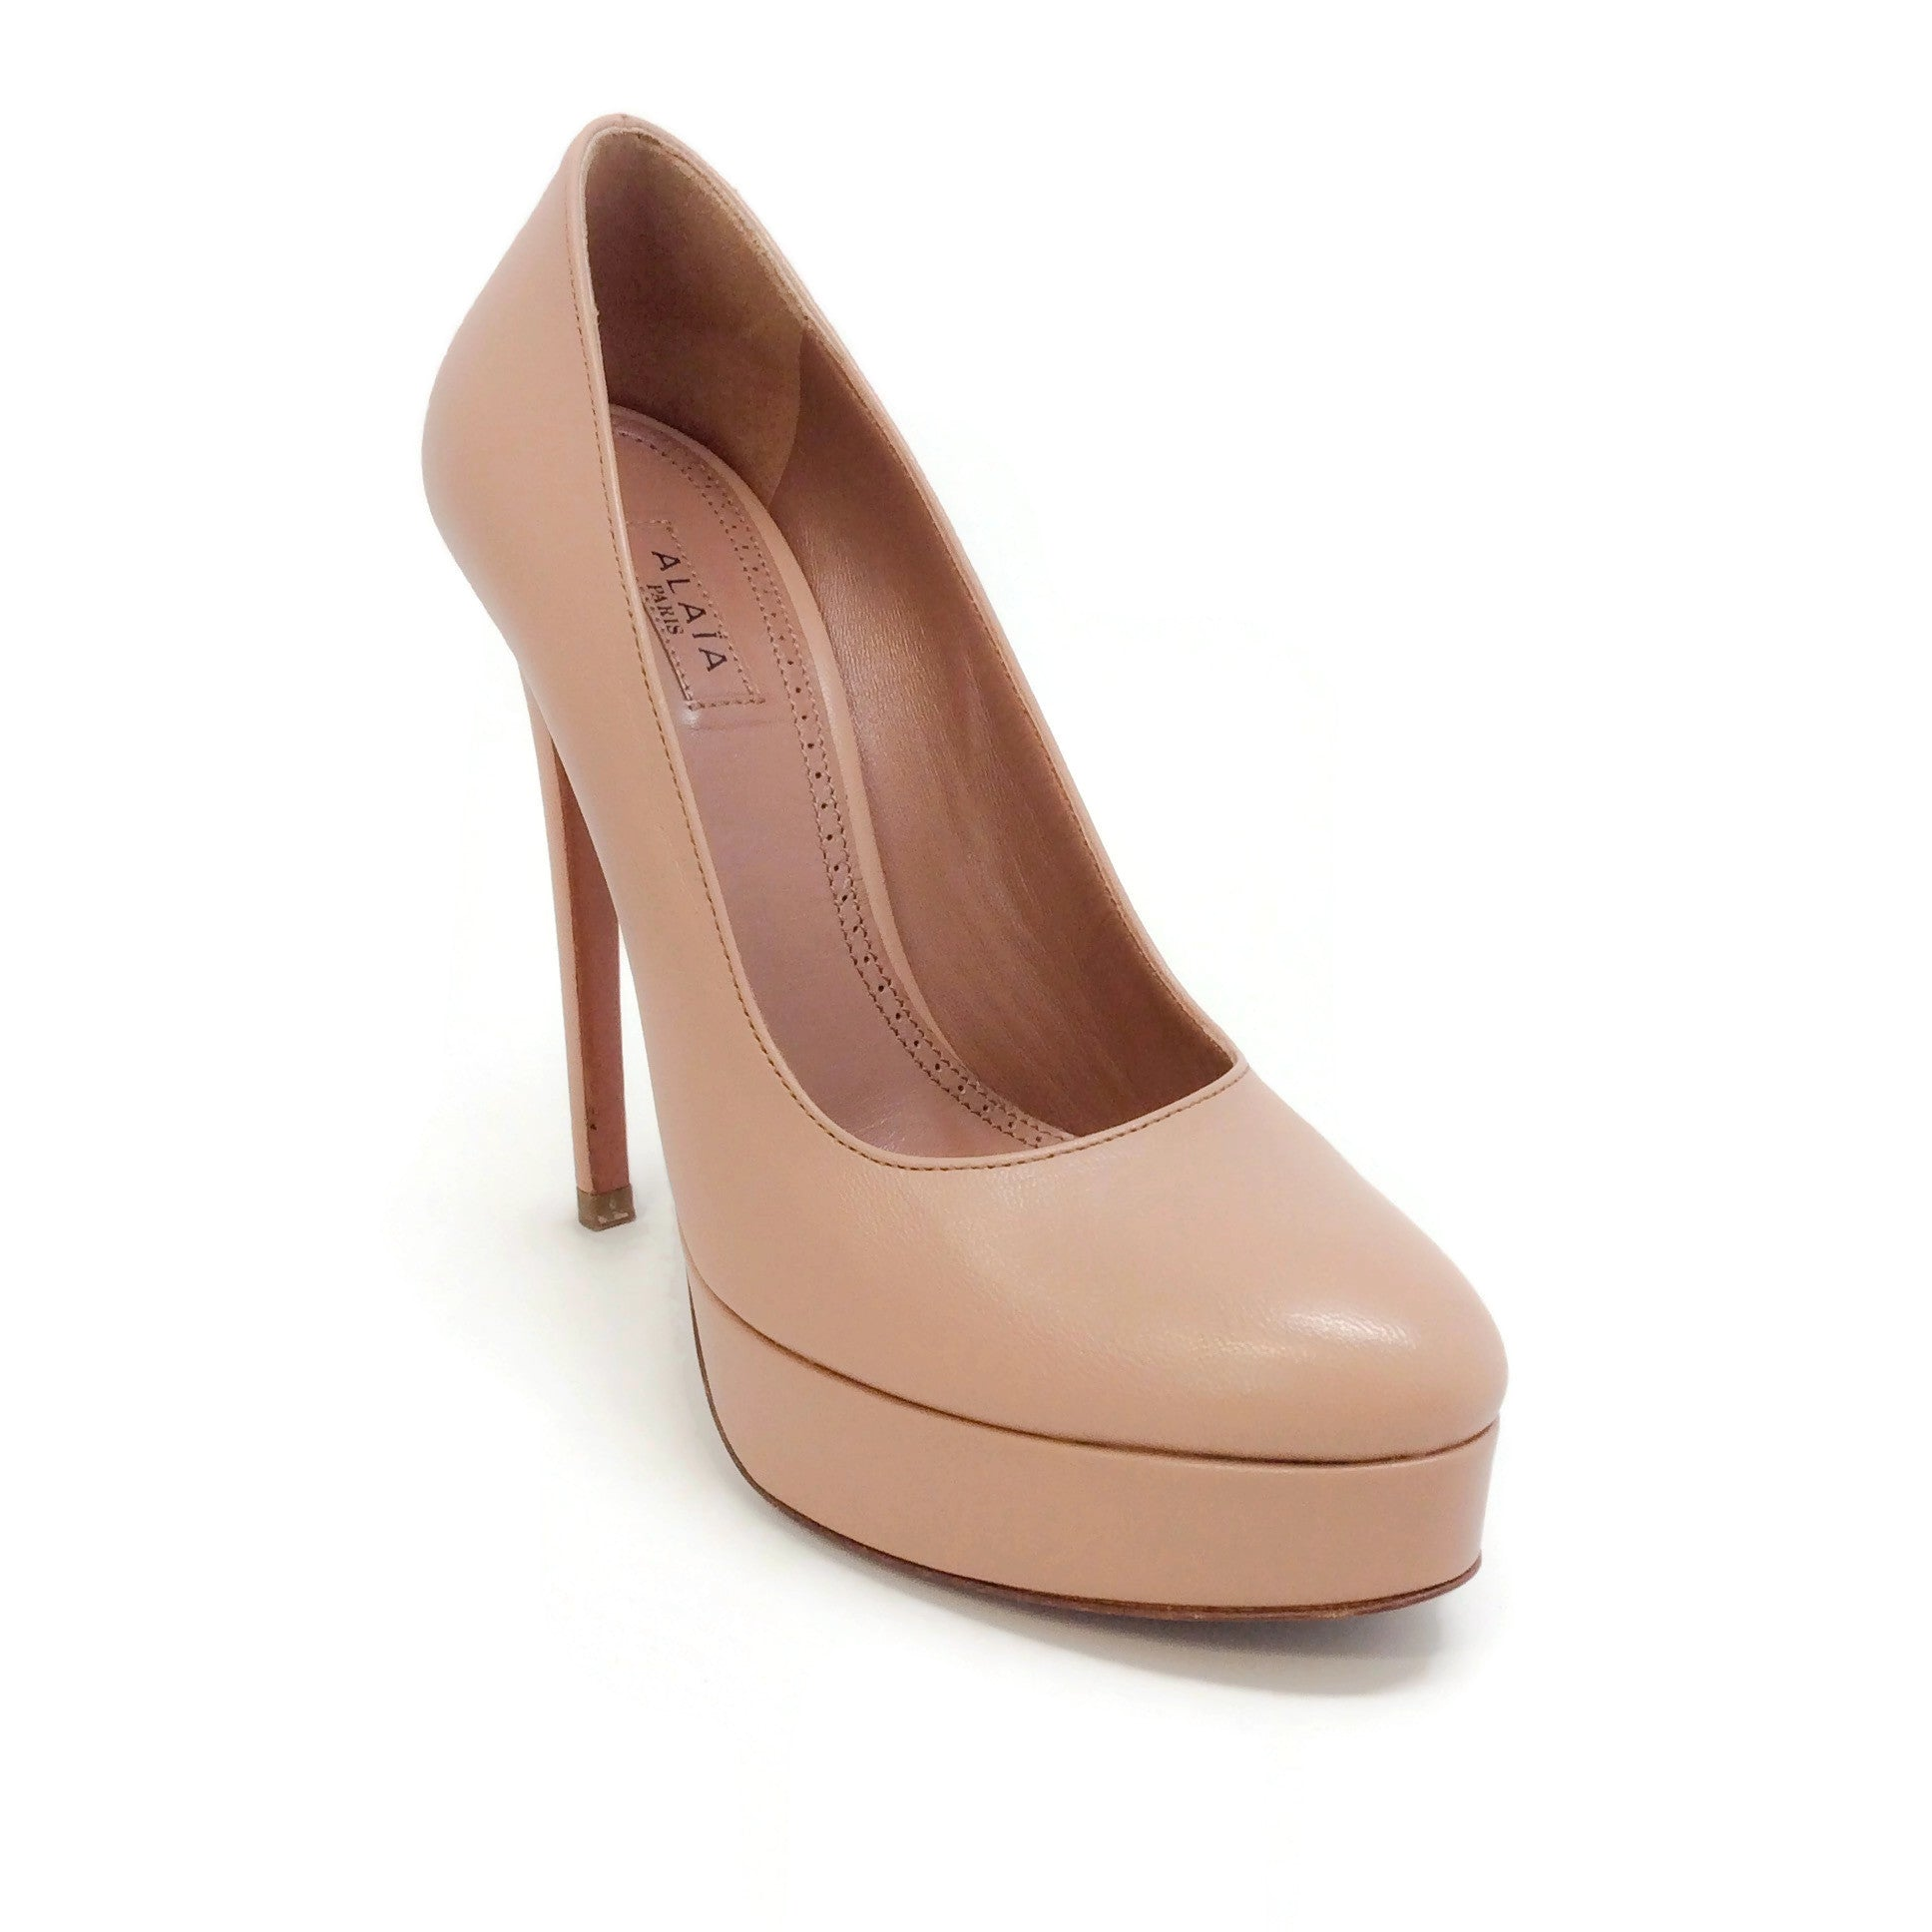 ALAÏA Nude Leather Platform Pumps